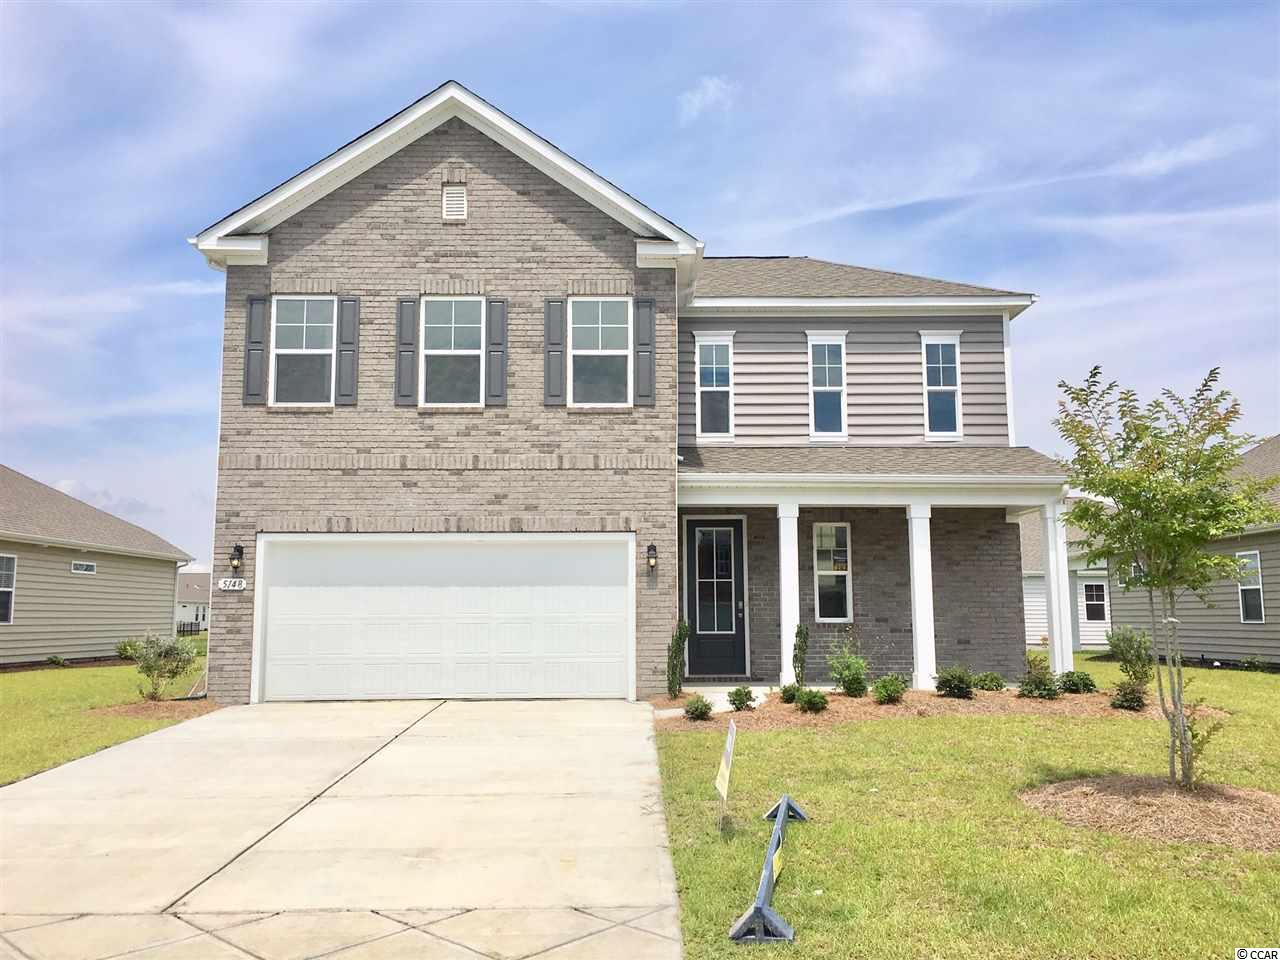 5148 Stockyard Loop, Myrtle Beach, South Carolina